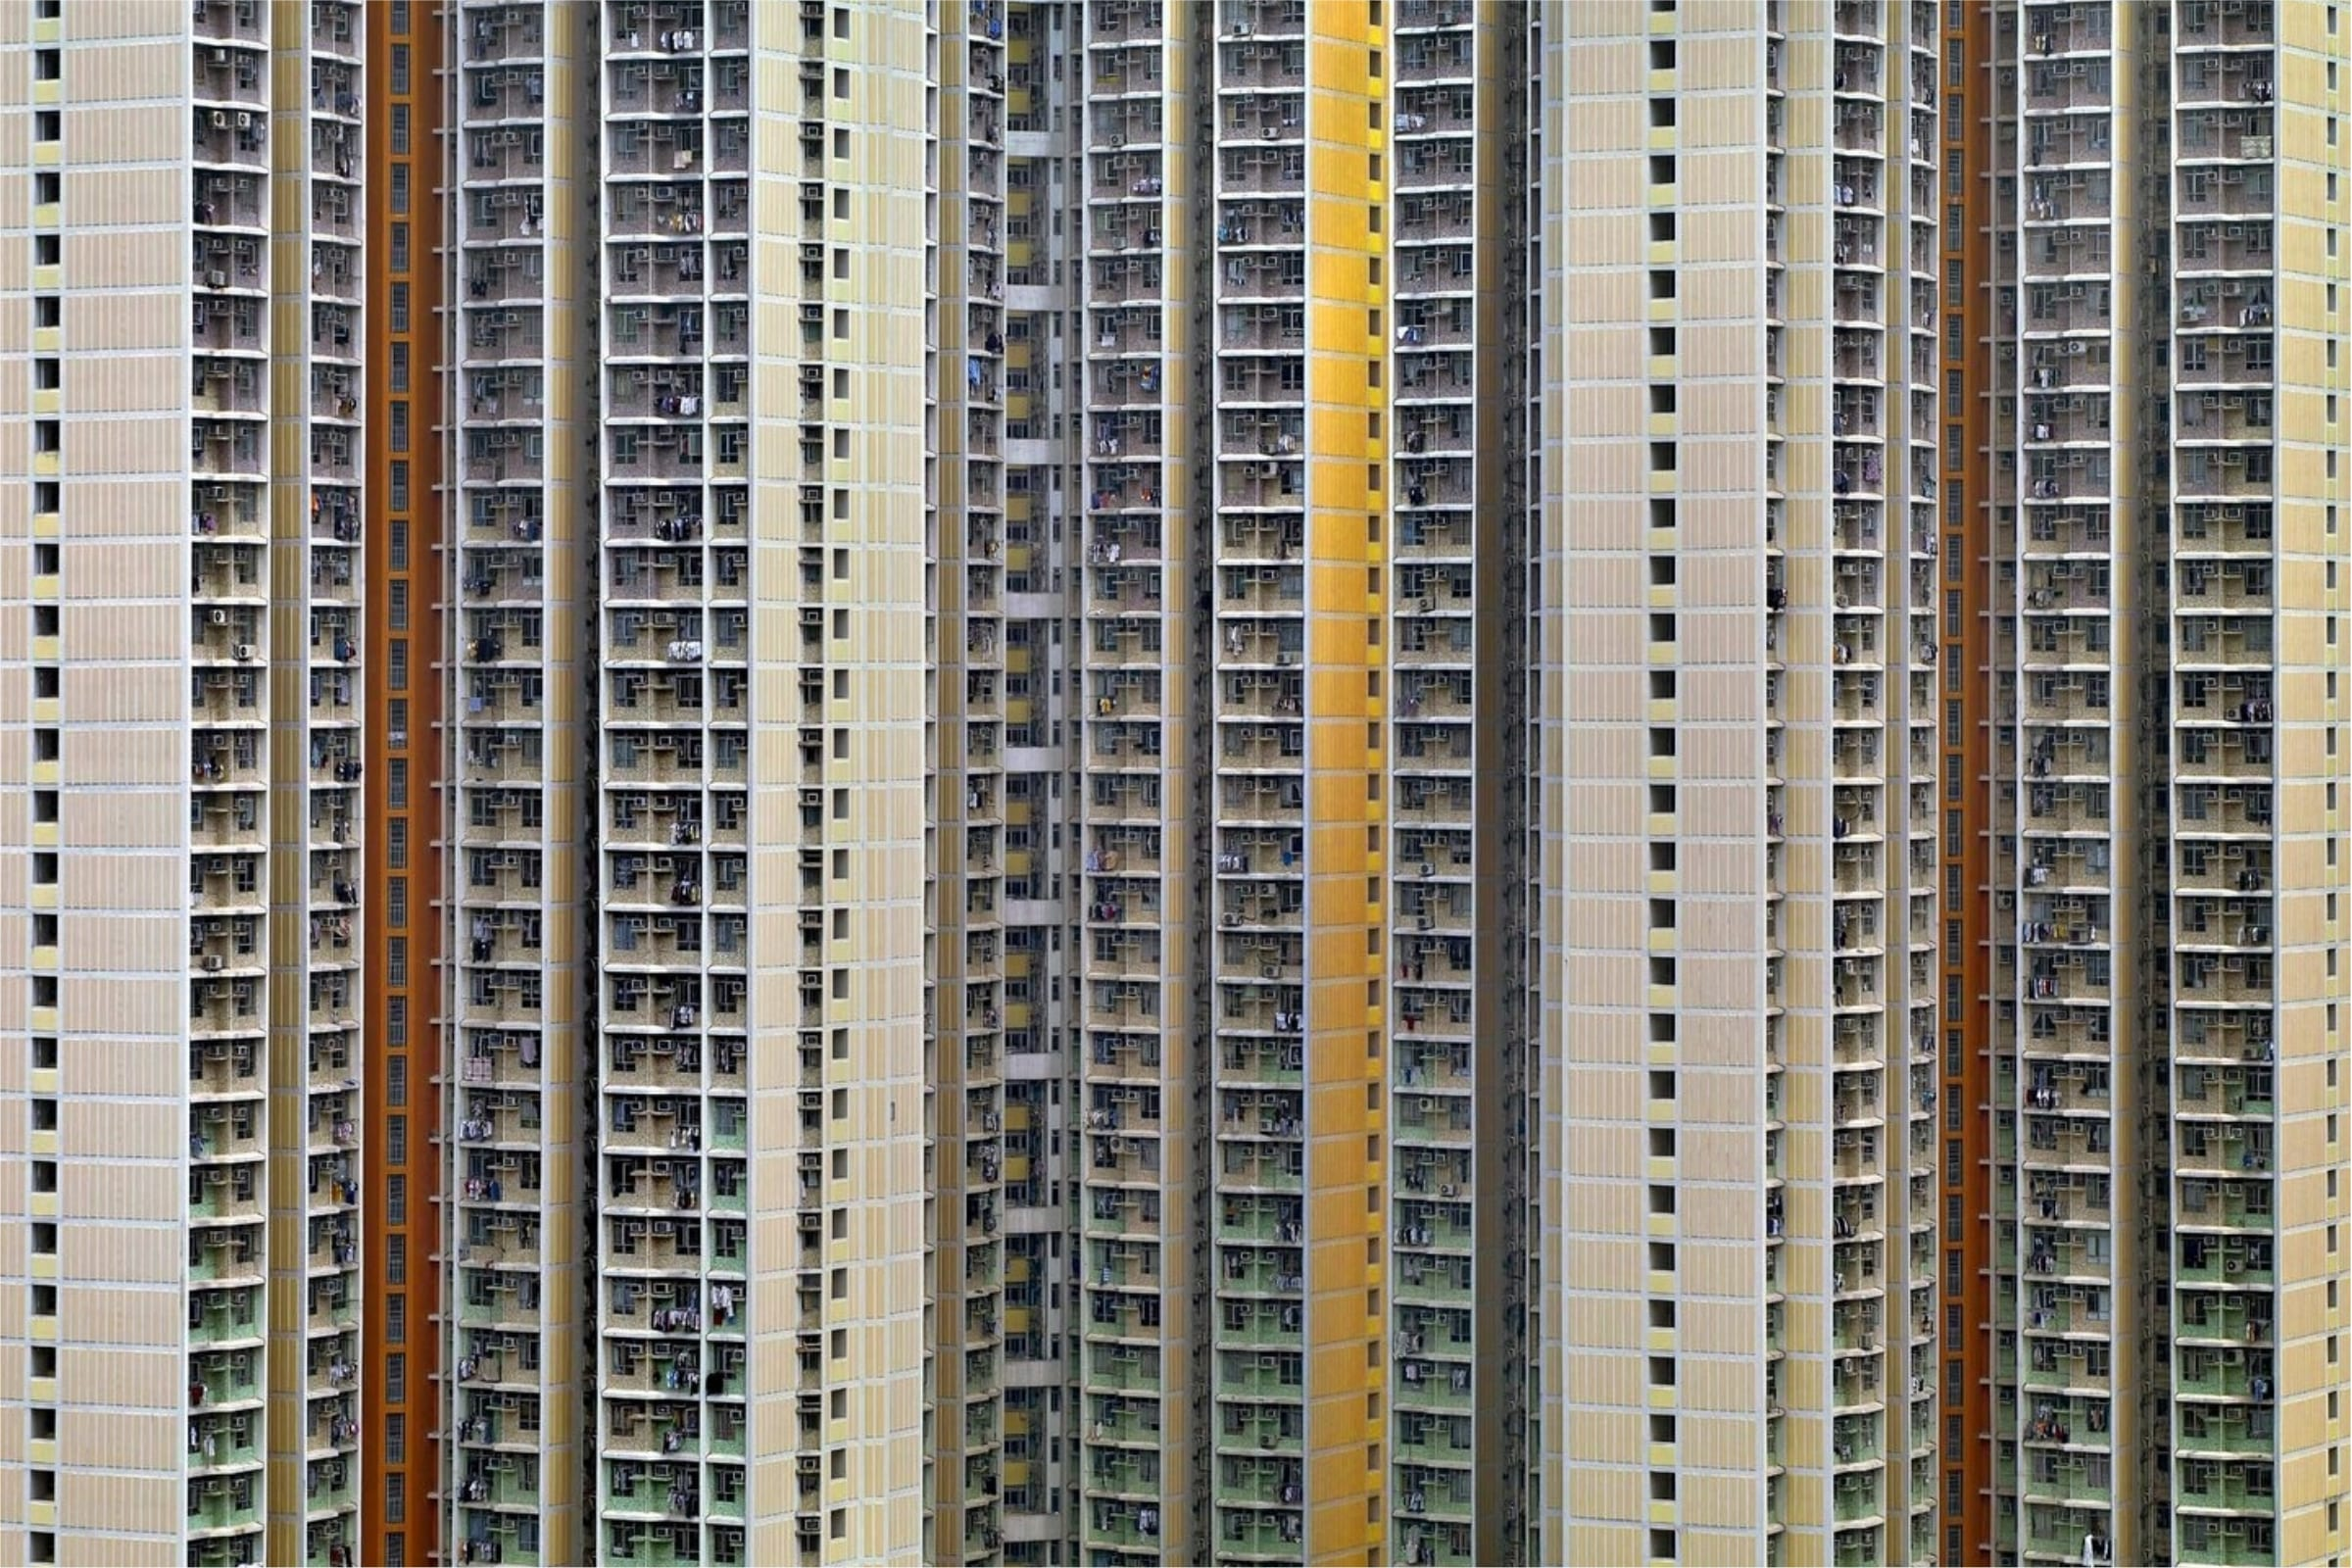 home-michael-wolf-hong-kong-architecture-of-density-antidote-magazine